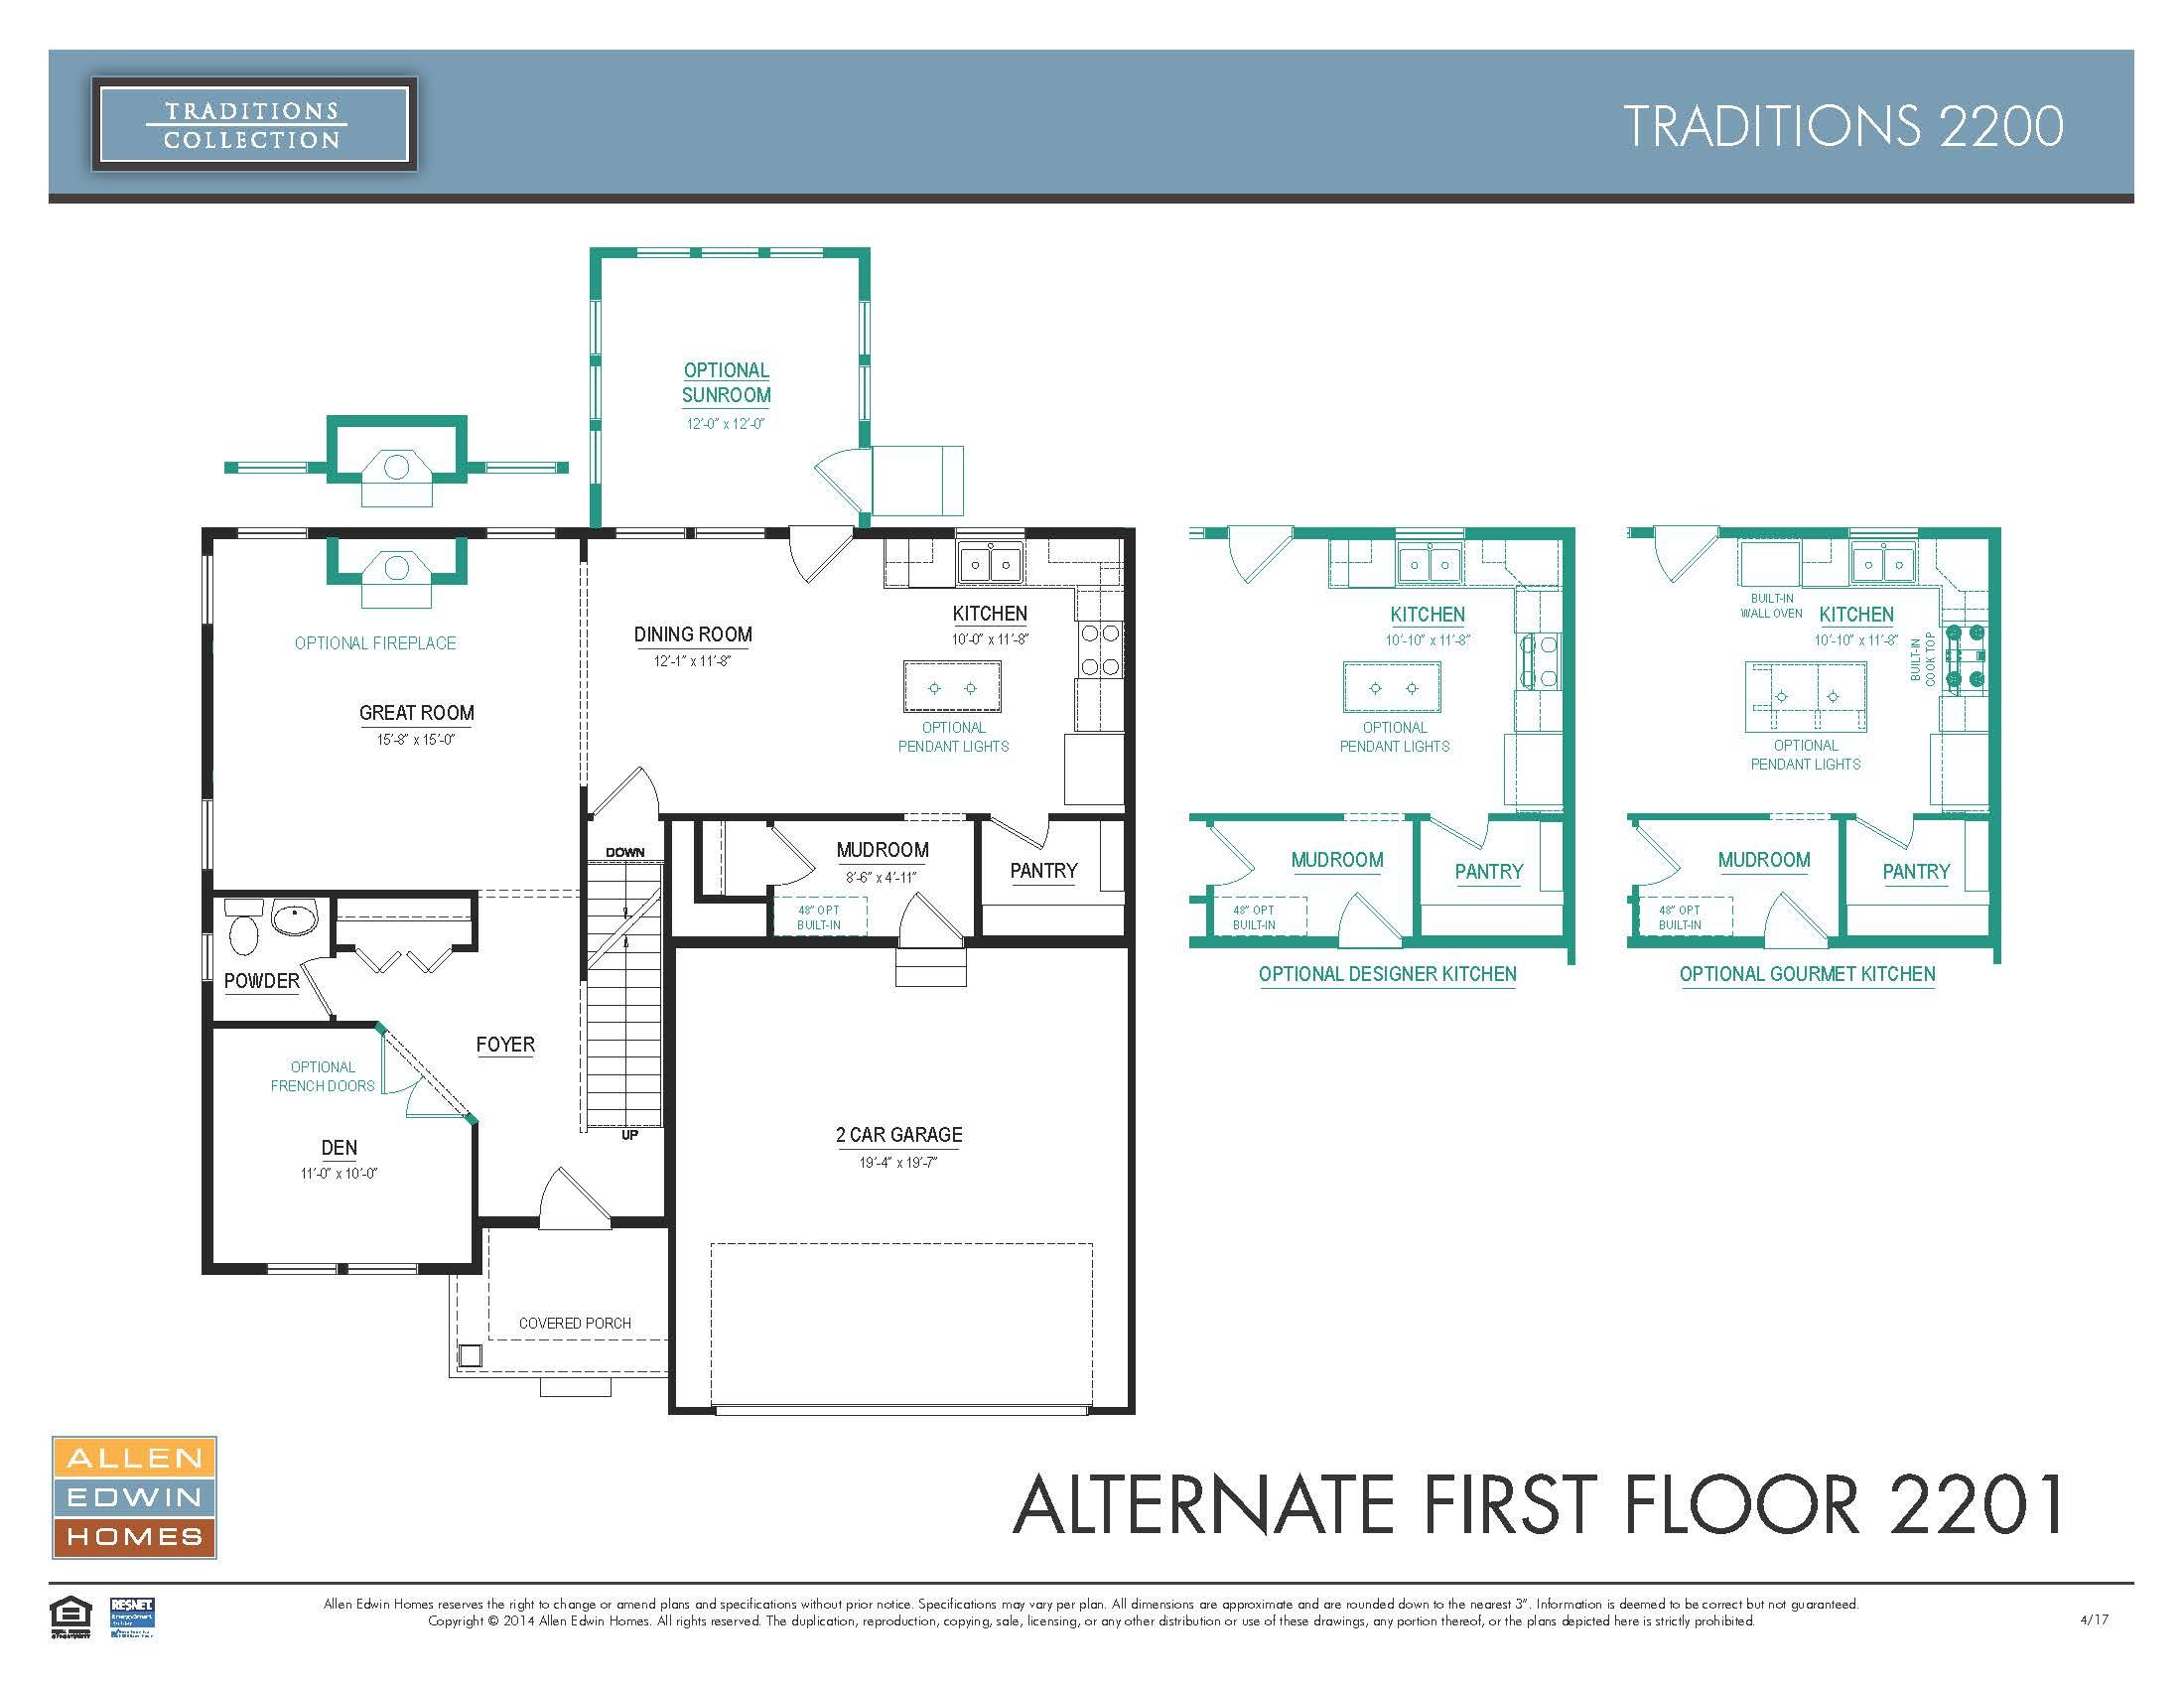 20 Pics Review Beazer Homes Floor Plans 2005 And Description In 2020 House Floor Plans Floor Plans Flooring